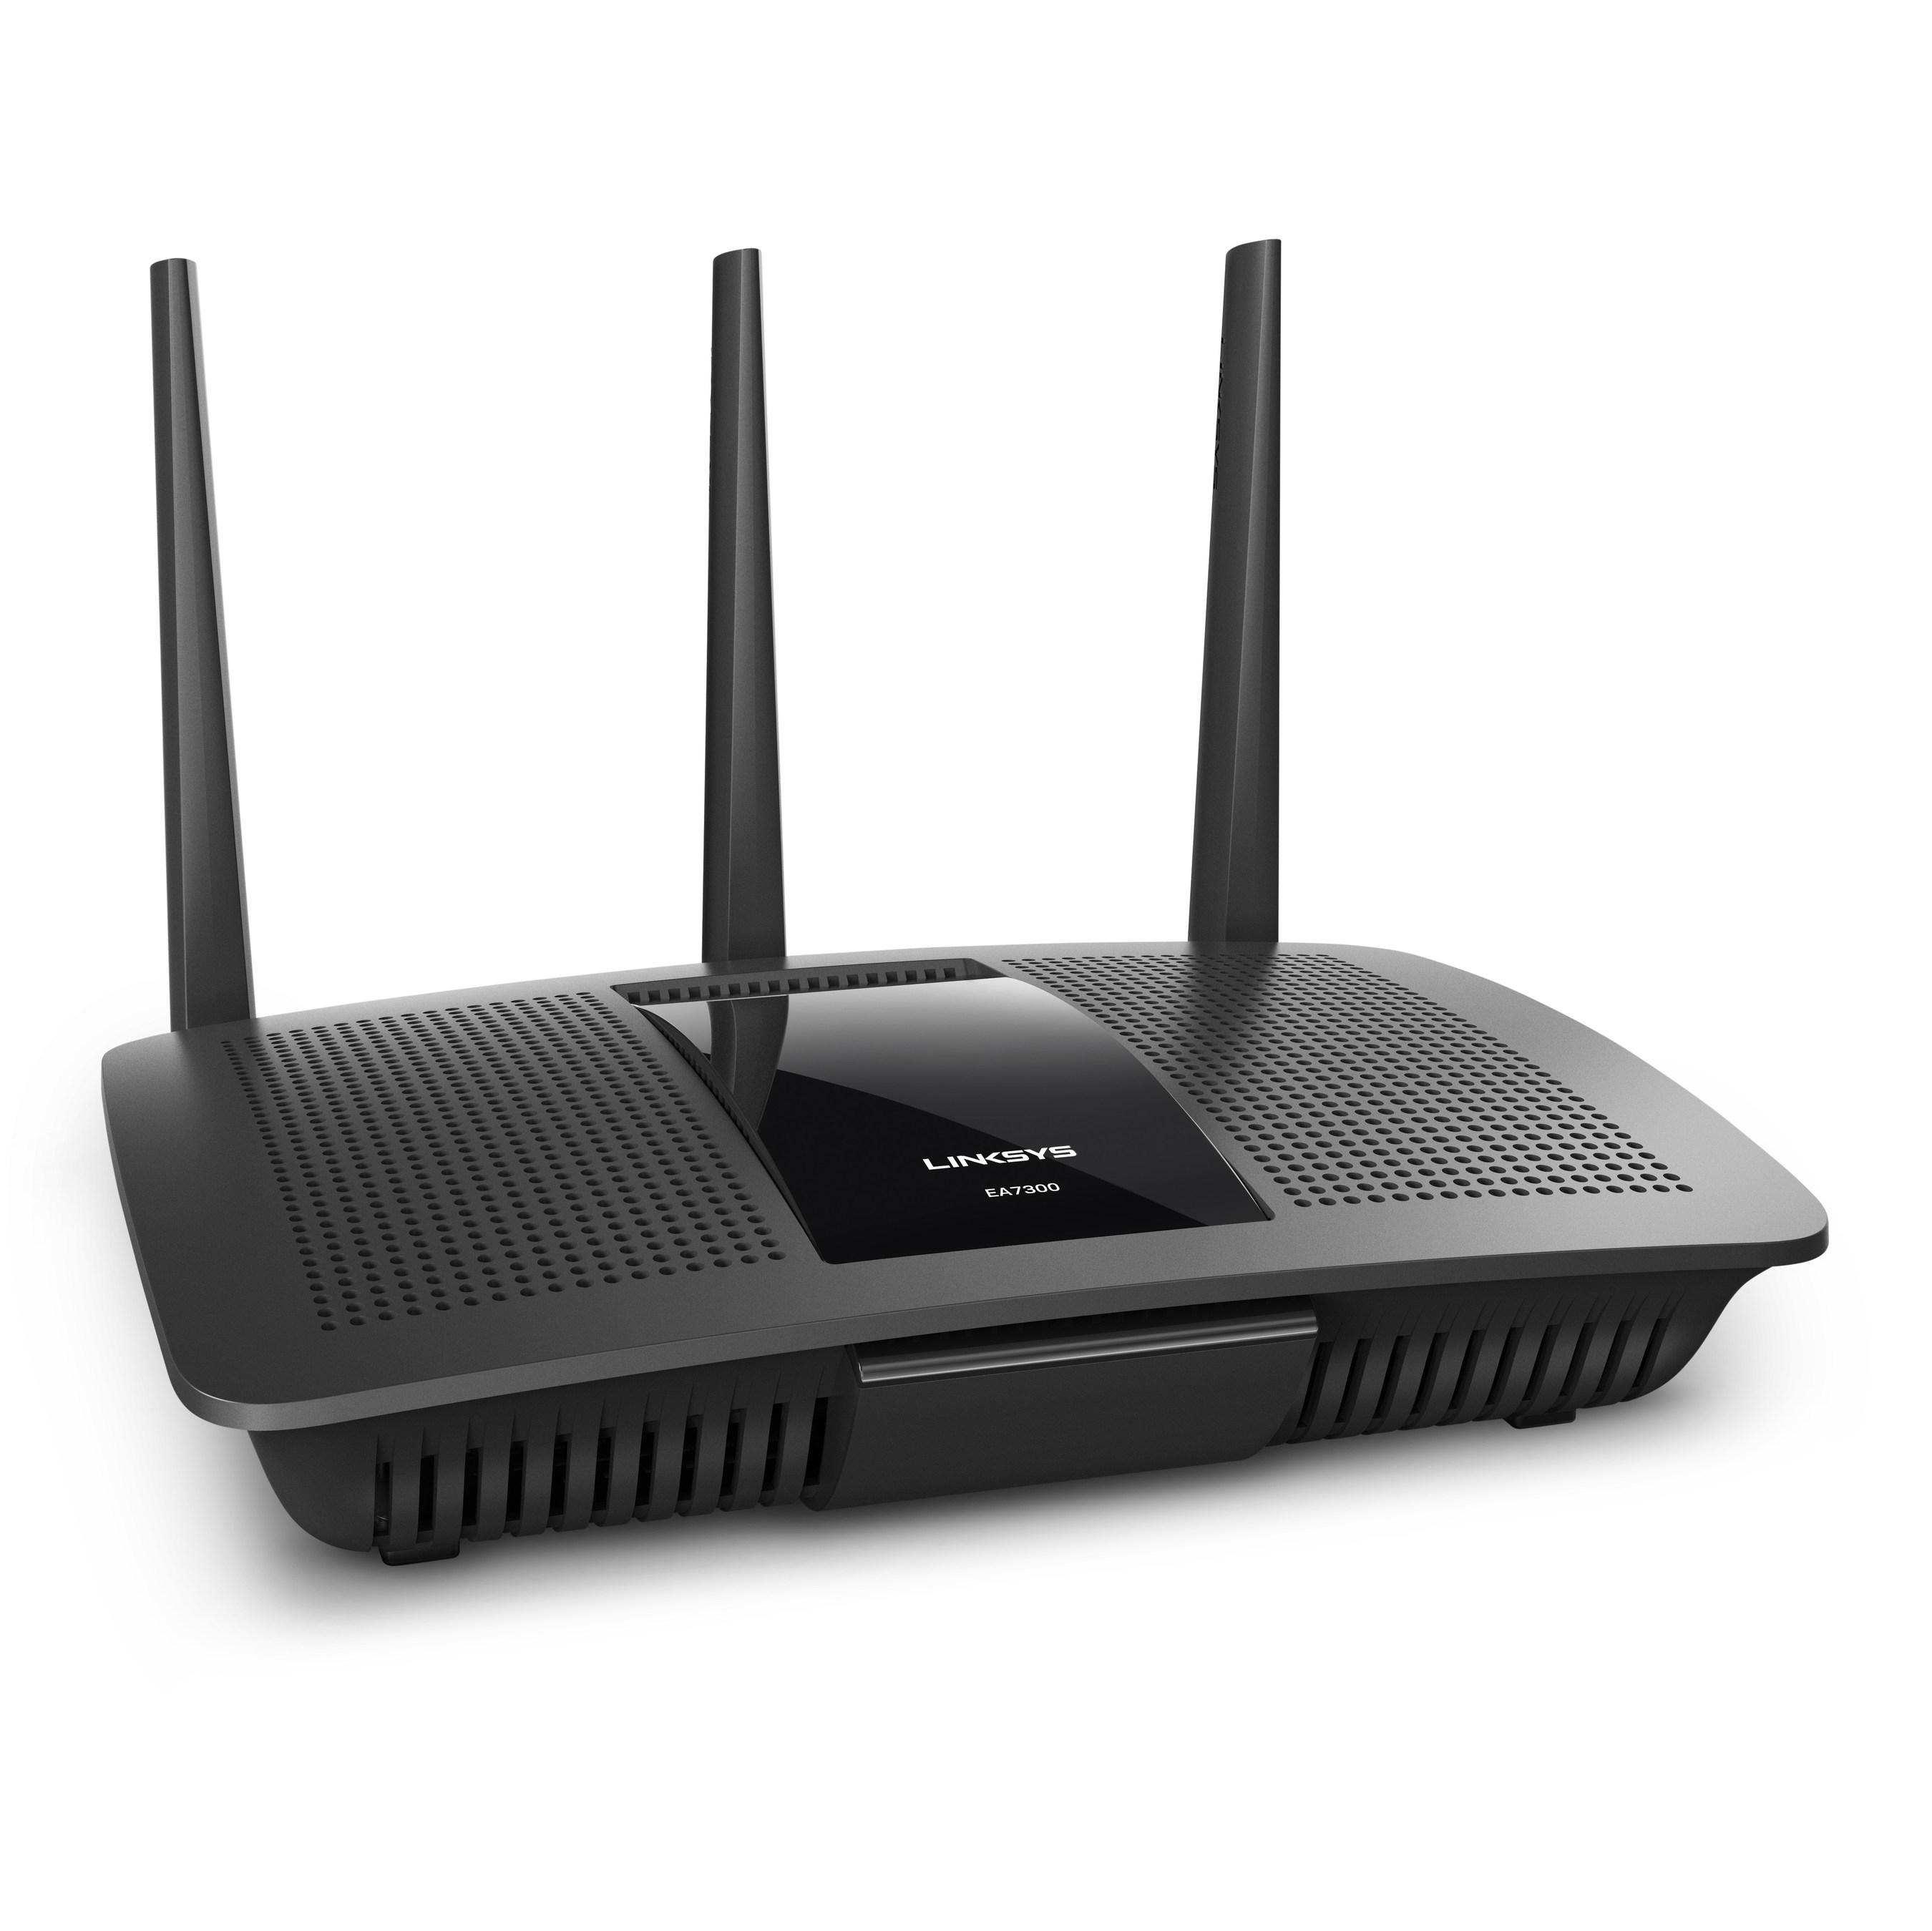 Linksys Launches First Entry Level AC1750 MU-MIMO Wi-Fi Router Ideal For Homes With Lots Of Connected Devices